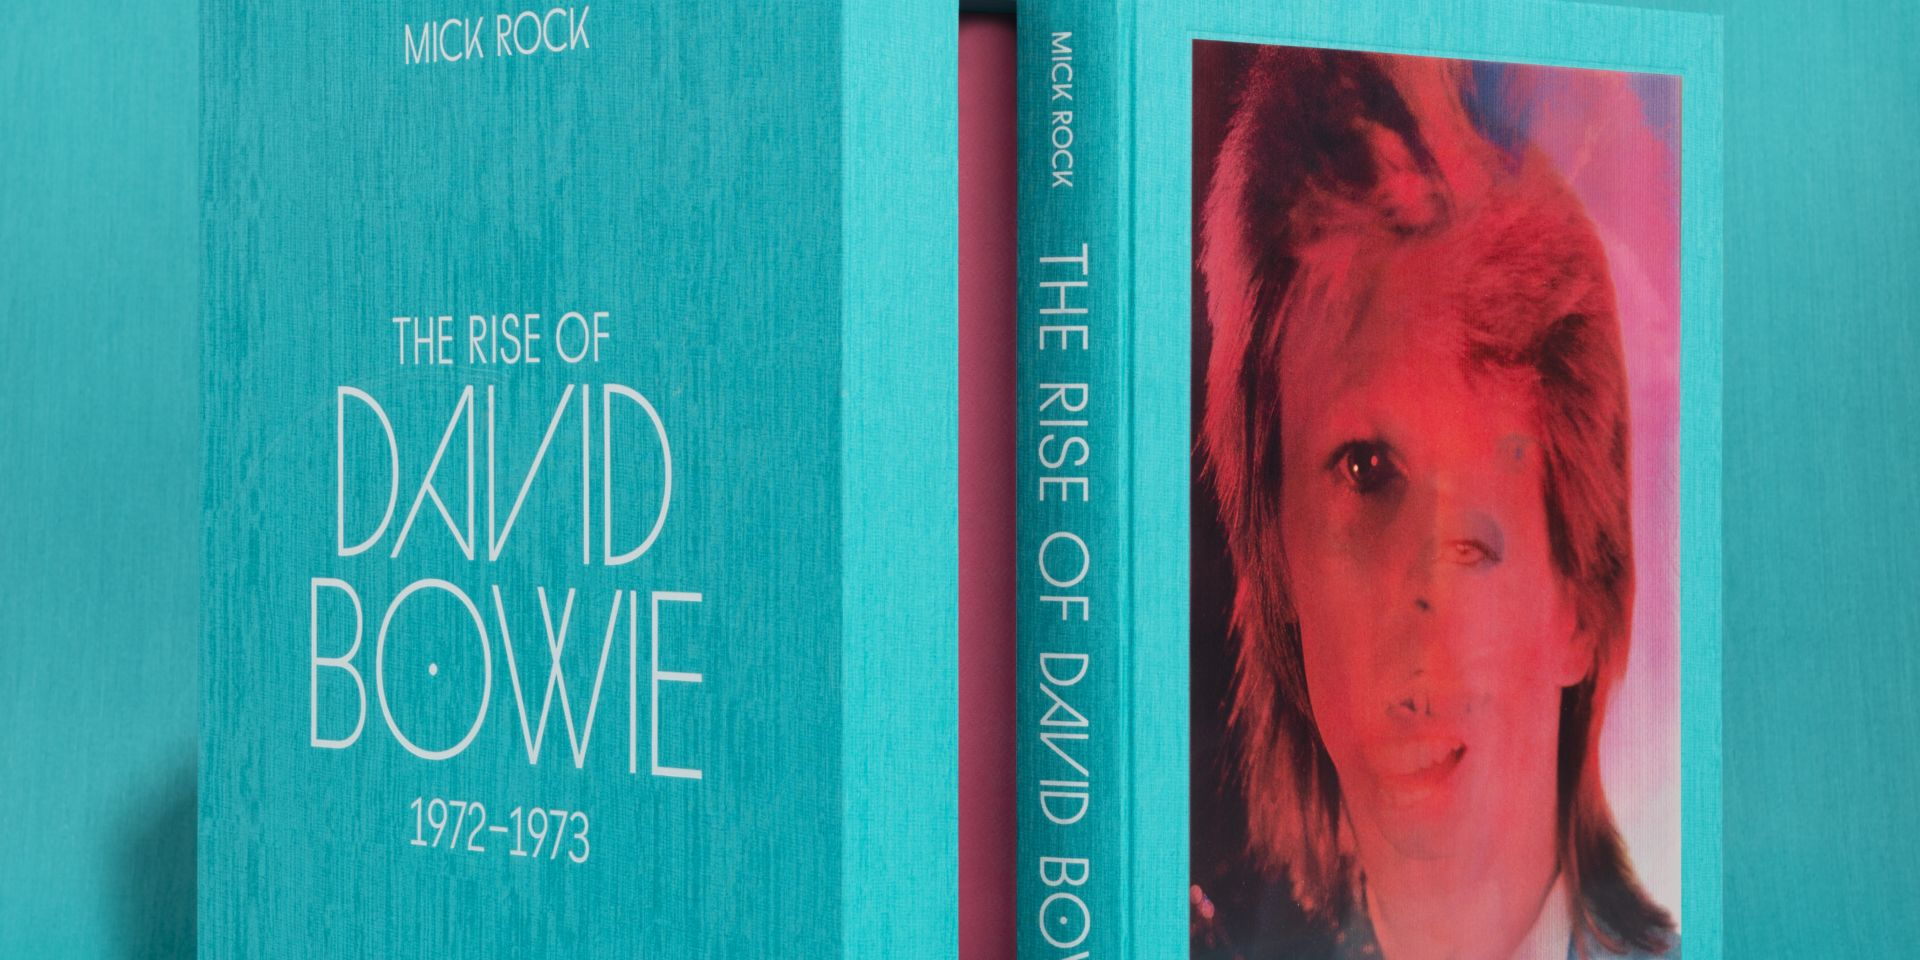 Photo album The Rise of David Bowie, Taschen